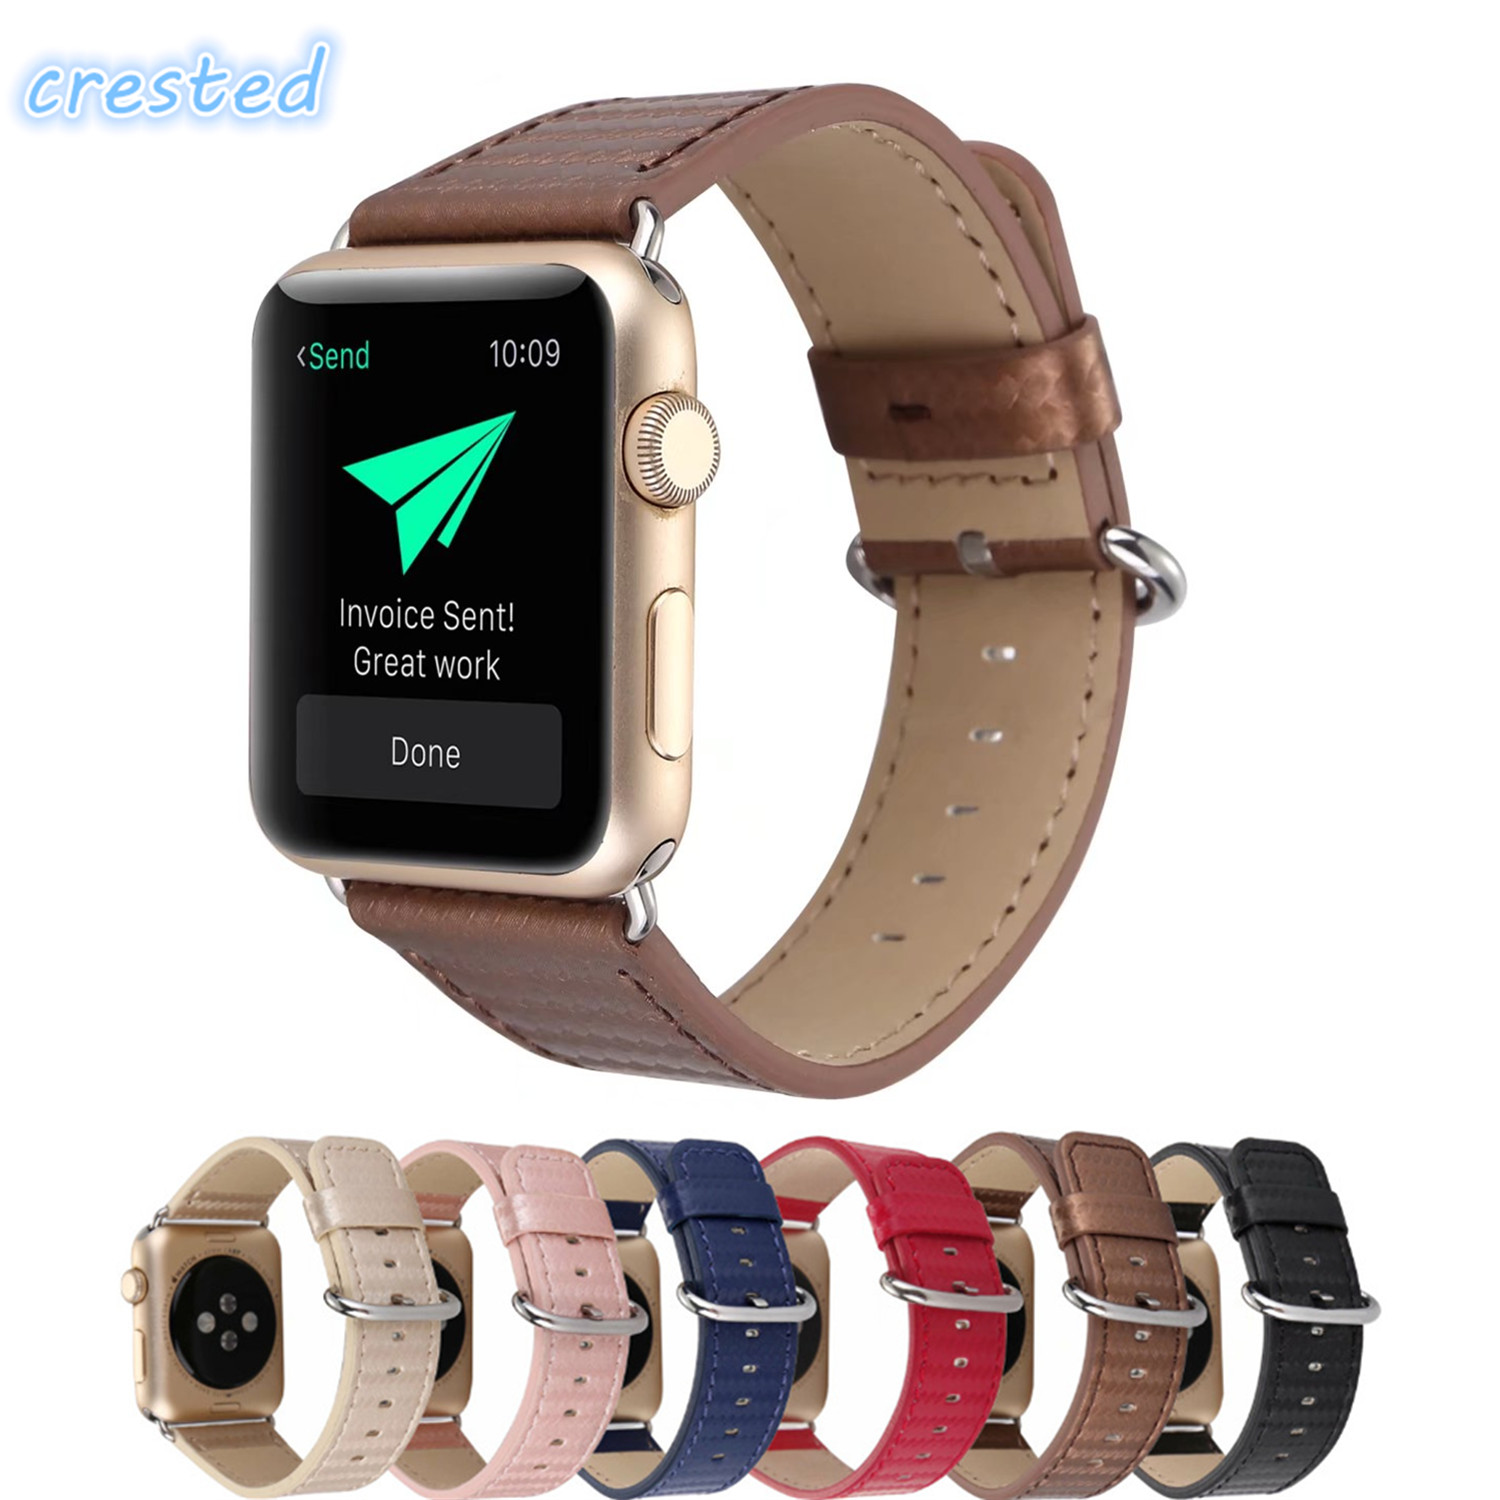 CRESTED carbon fiber leather band for apple watch band 42mm 38mm wrist bracelet watchband for iwatch